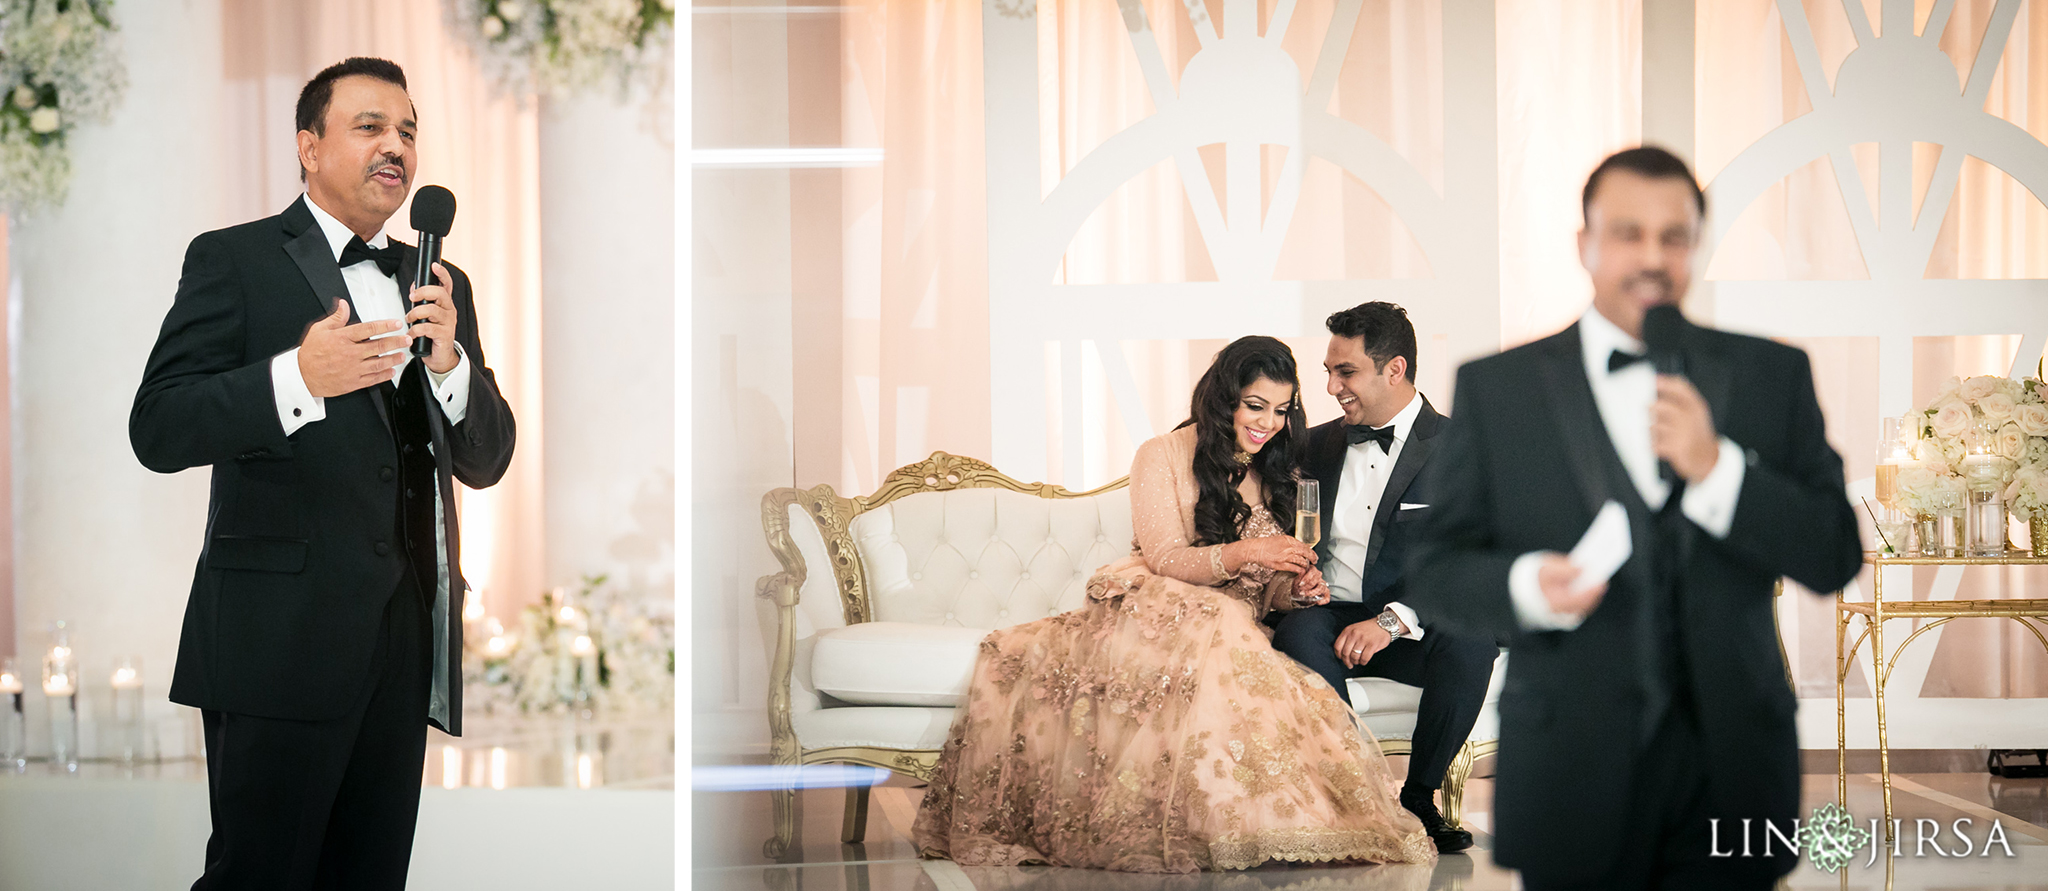 25-monarch-beach-resort-indian-wedding-photography